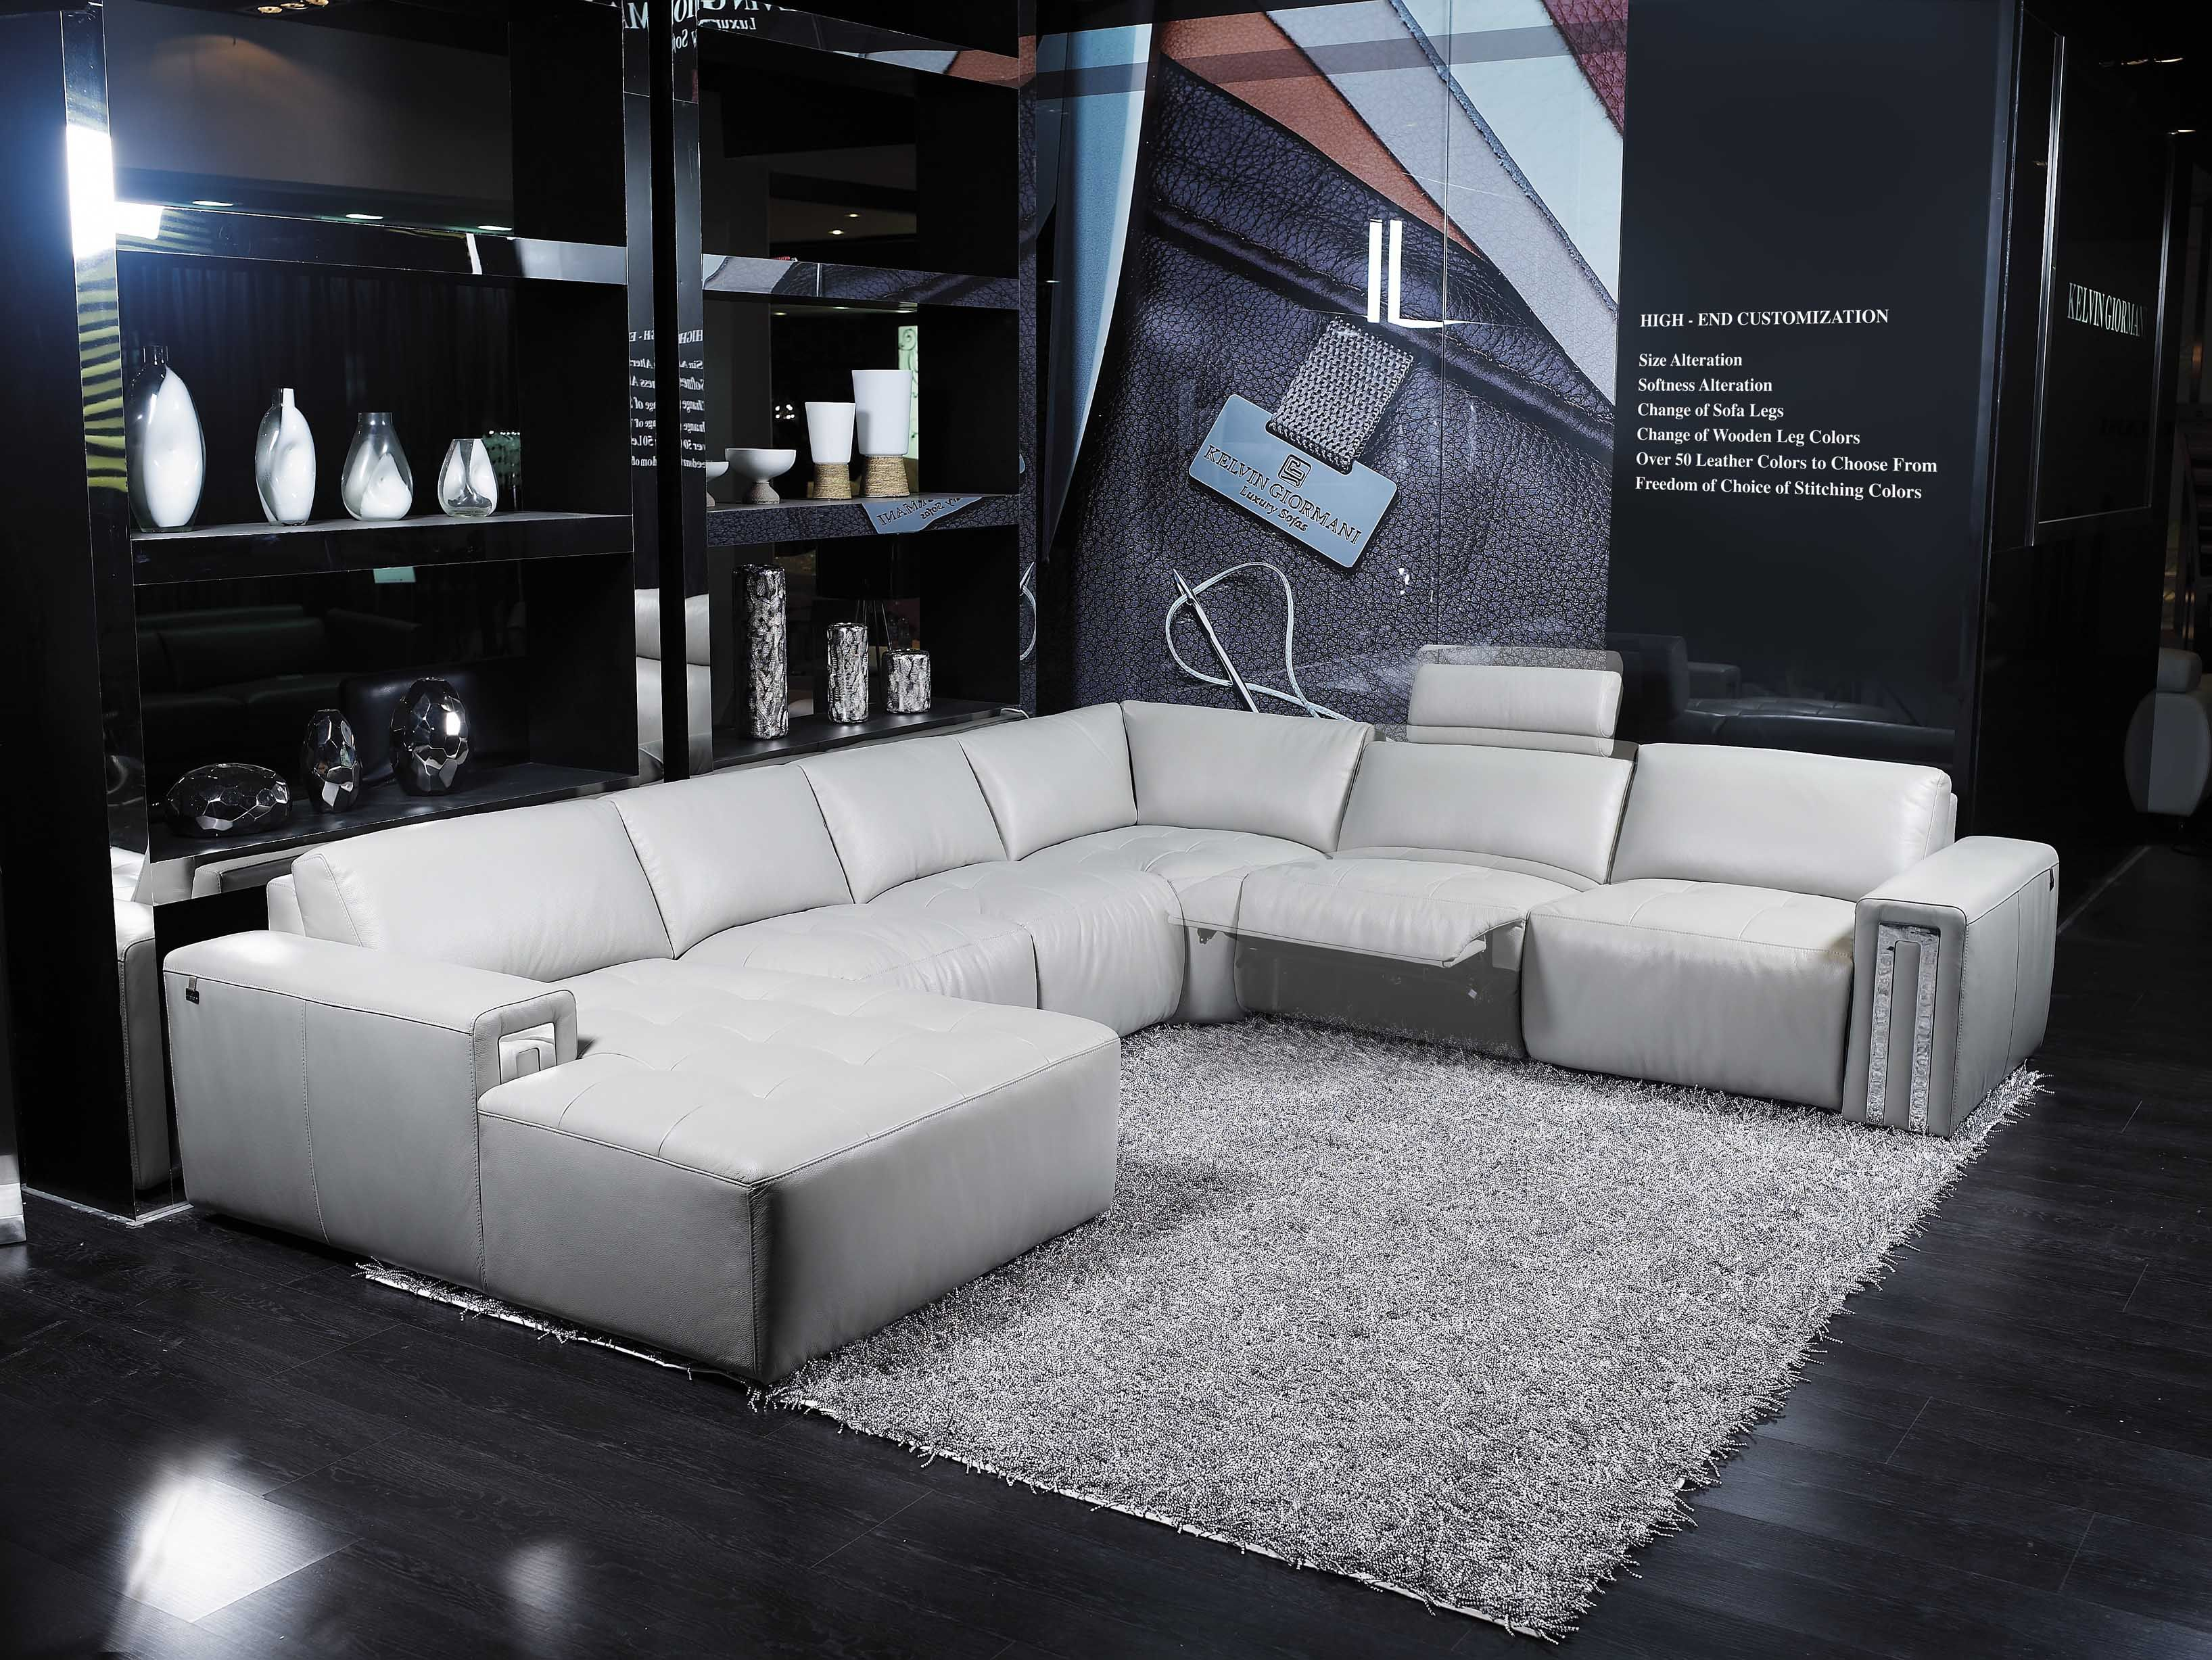 Model 0138V Levice III Planums Popular Reclining Sectional Planum Collection Levice III